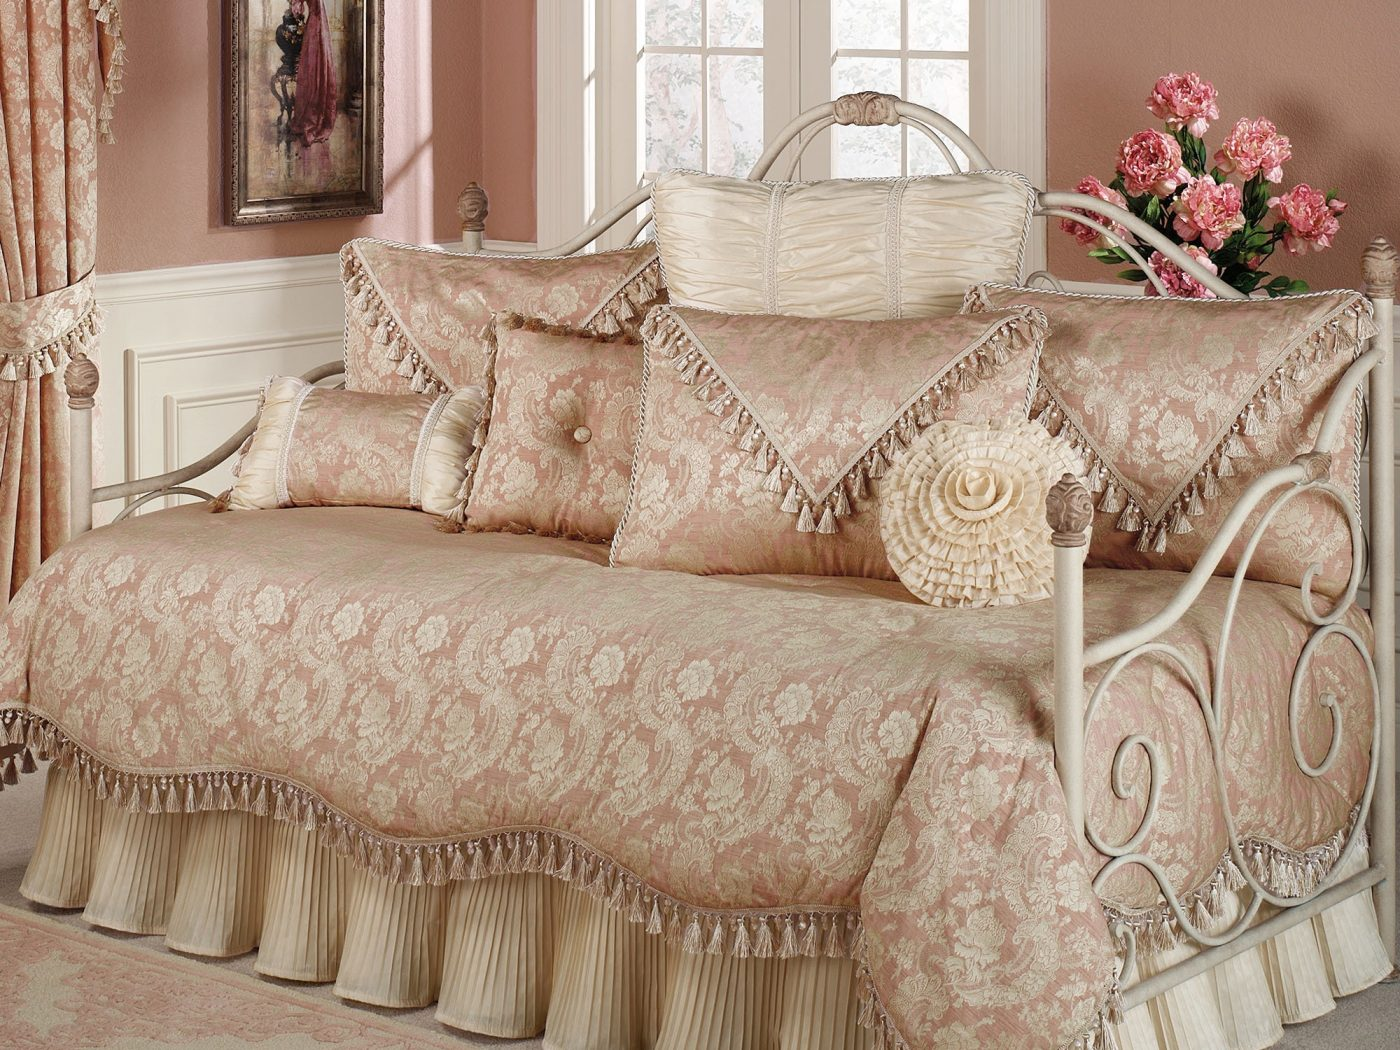 daybed bedding sets sears photo - 8